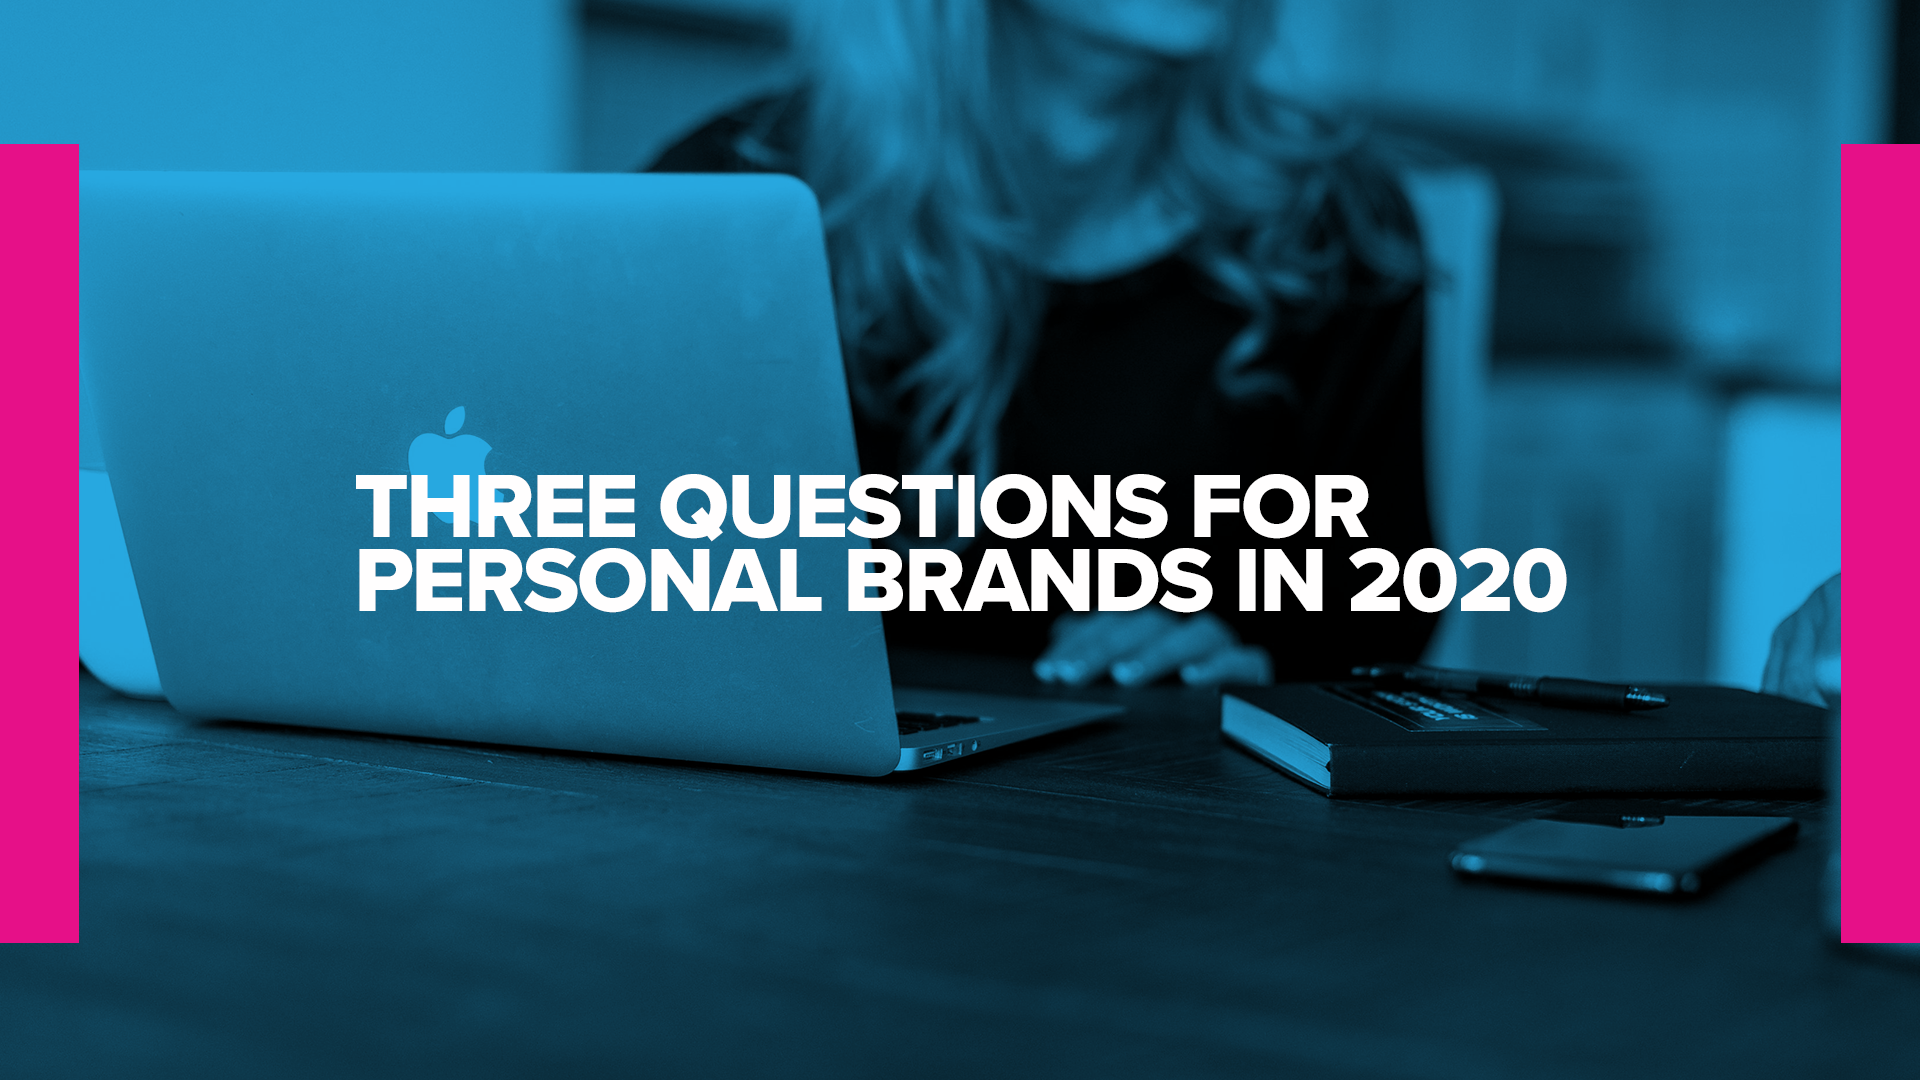 3 Questions for Personal Brands in 2020